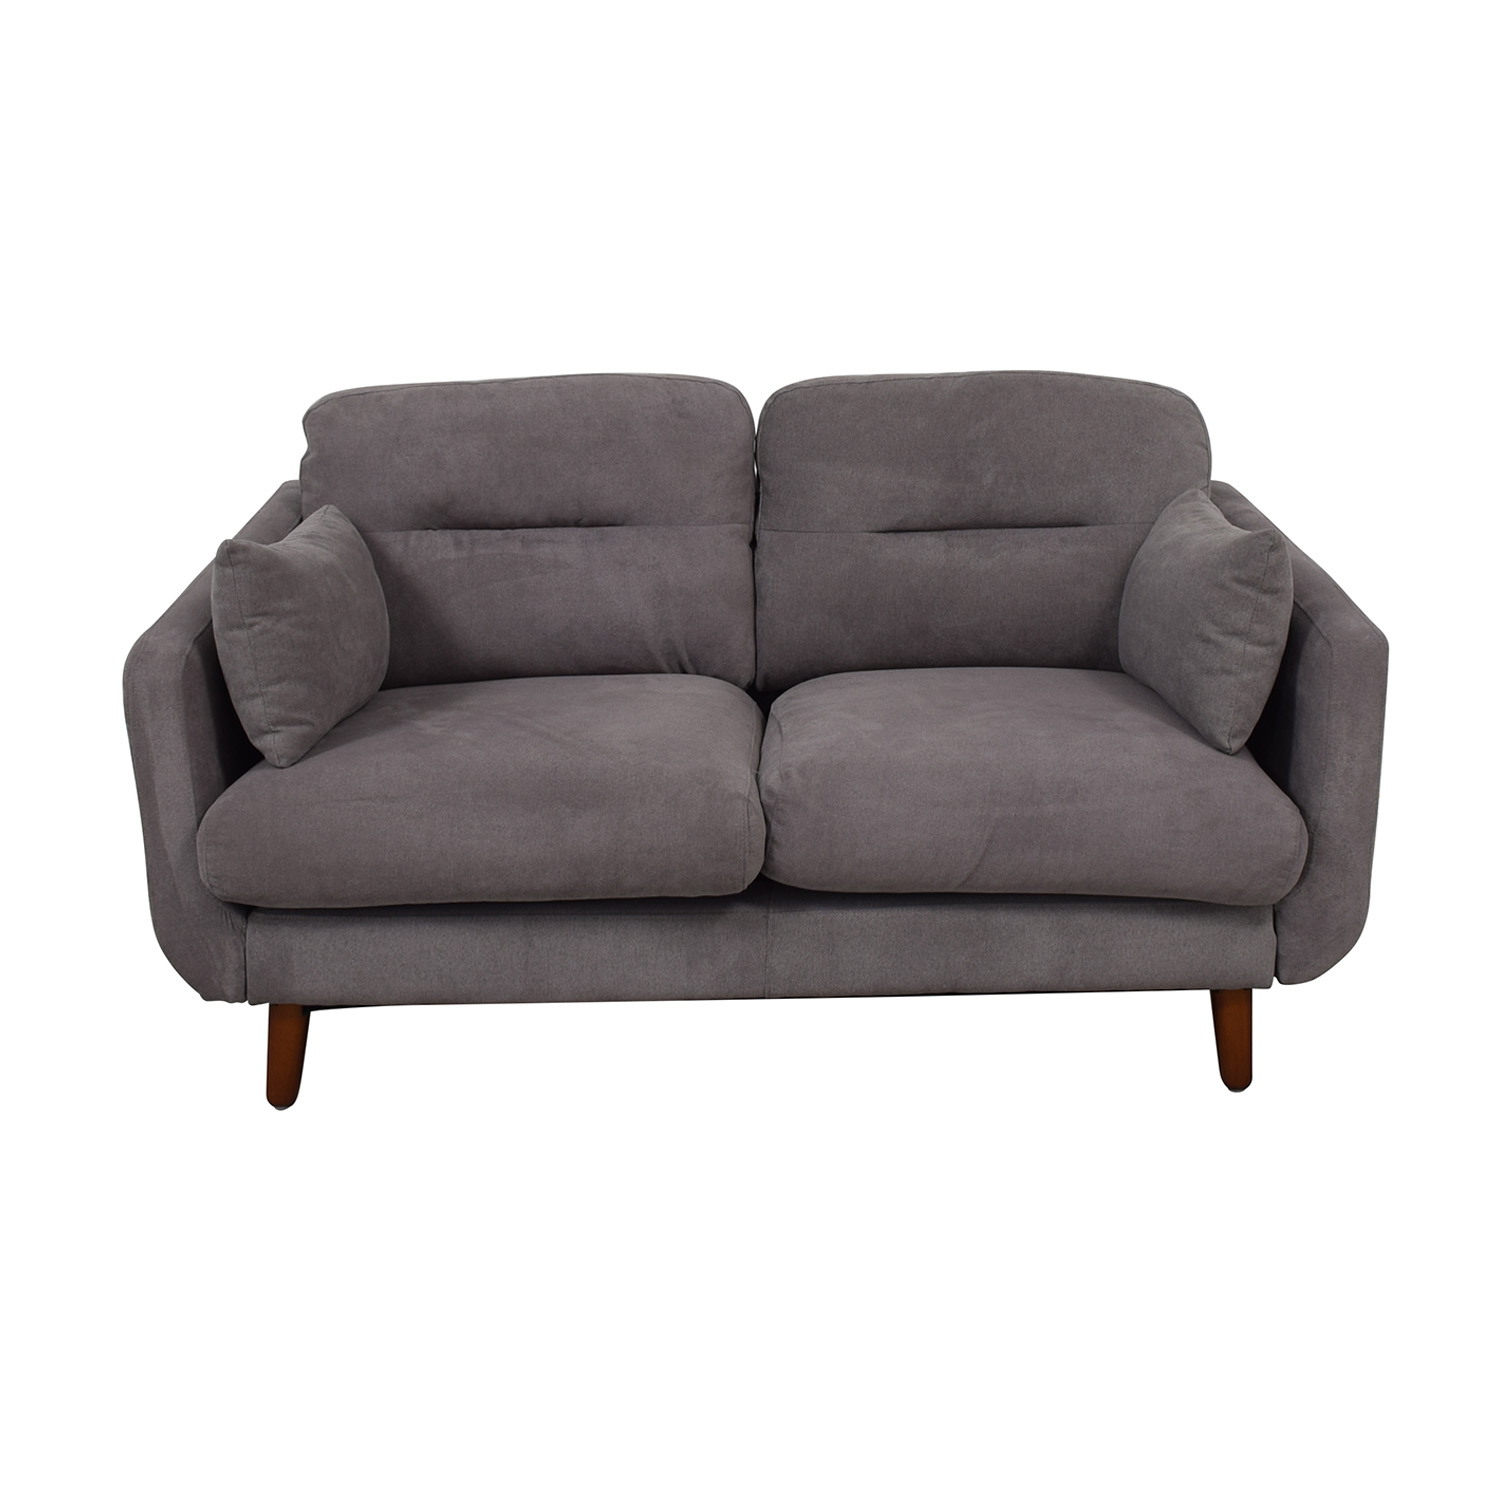 Wayfair Wayfair Grey Two-Cushion Love Seat Loveseats